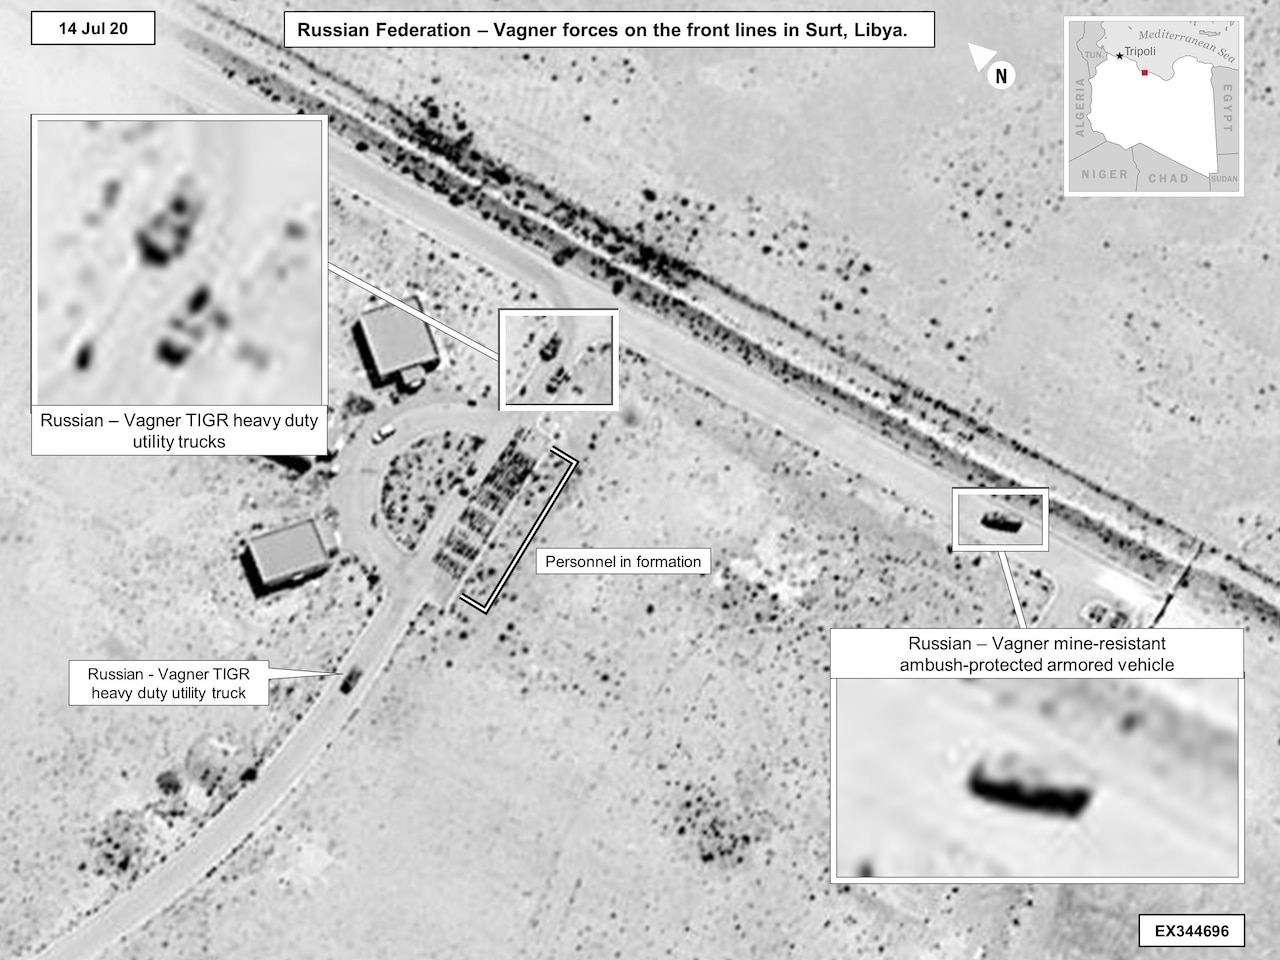 An aerial photo shows military equipment on the ground.